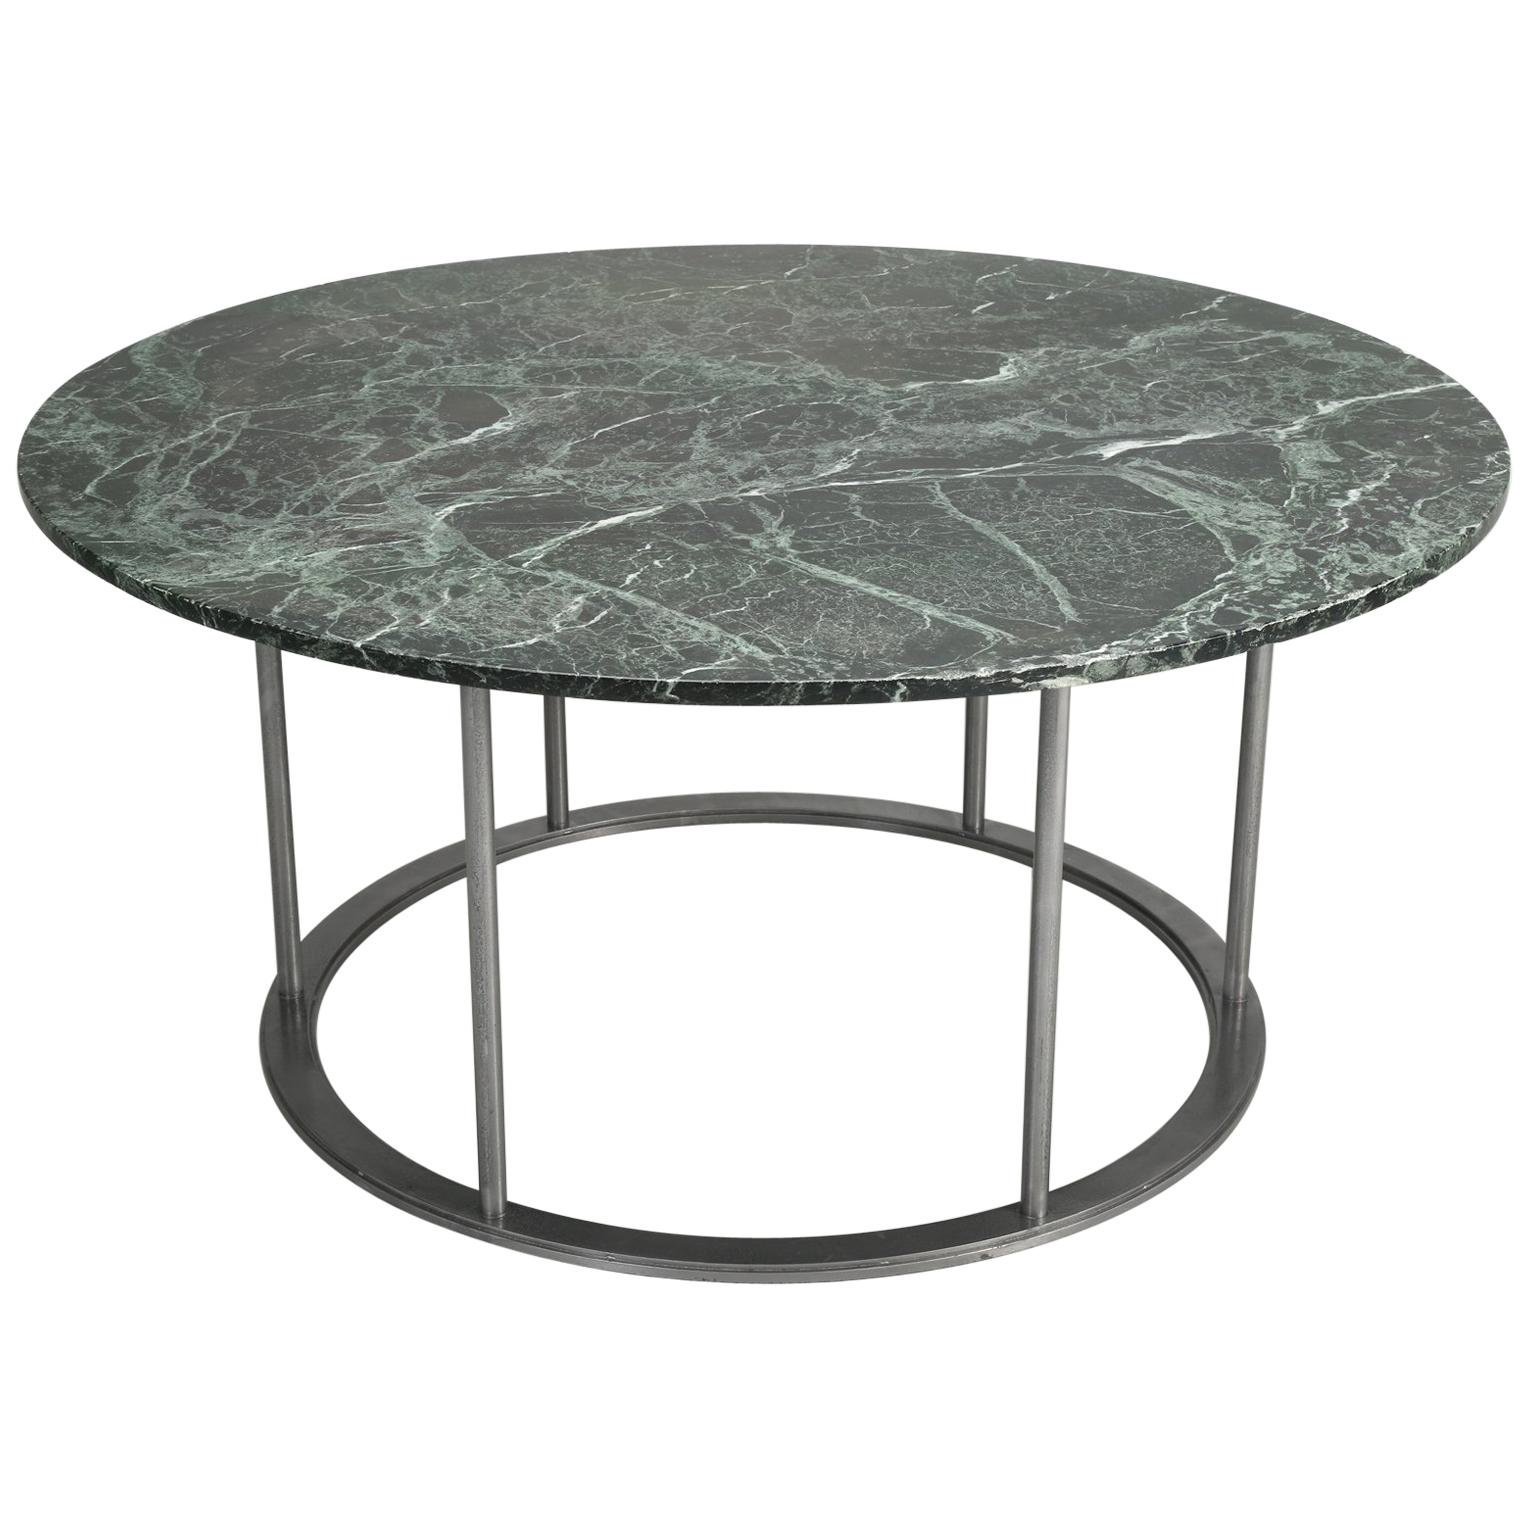 Merveilleux Round Marble Dining Table With A Steel Base For Indoor Or Outdoor Use